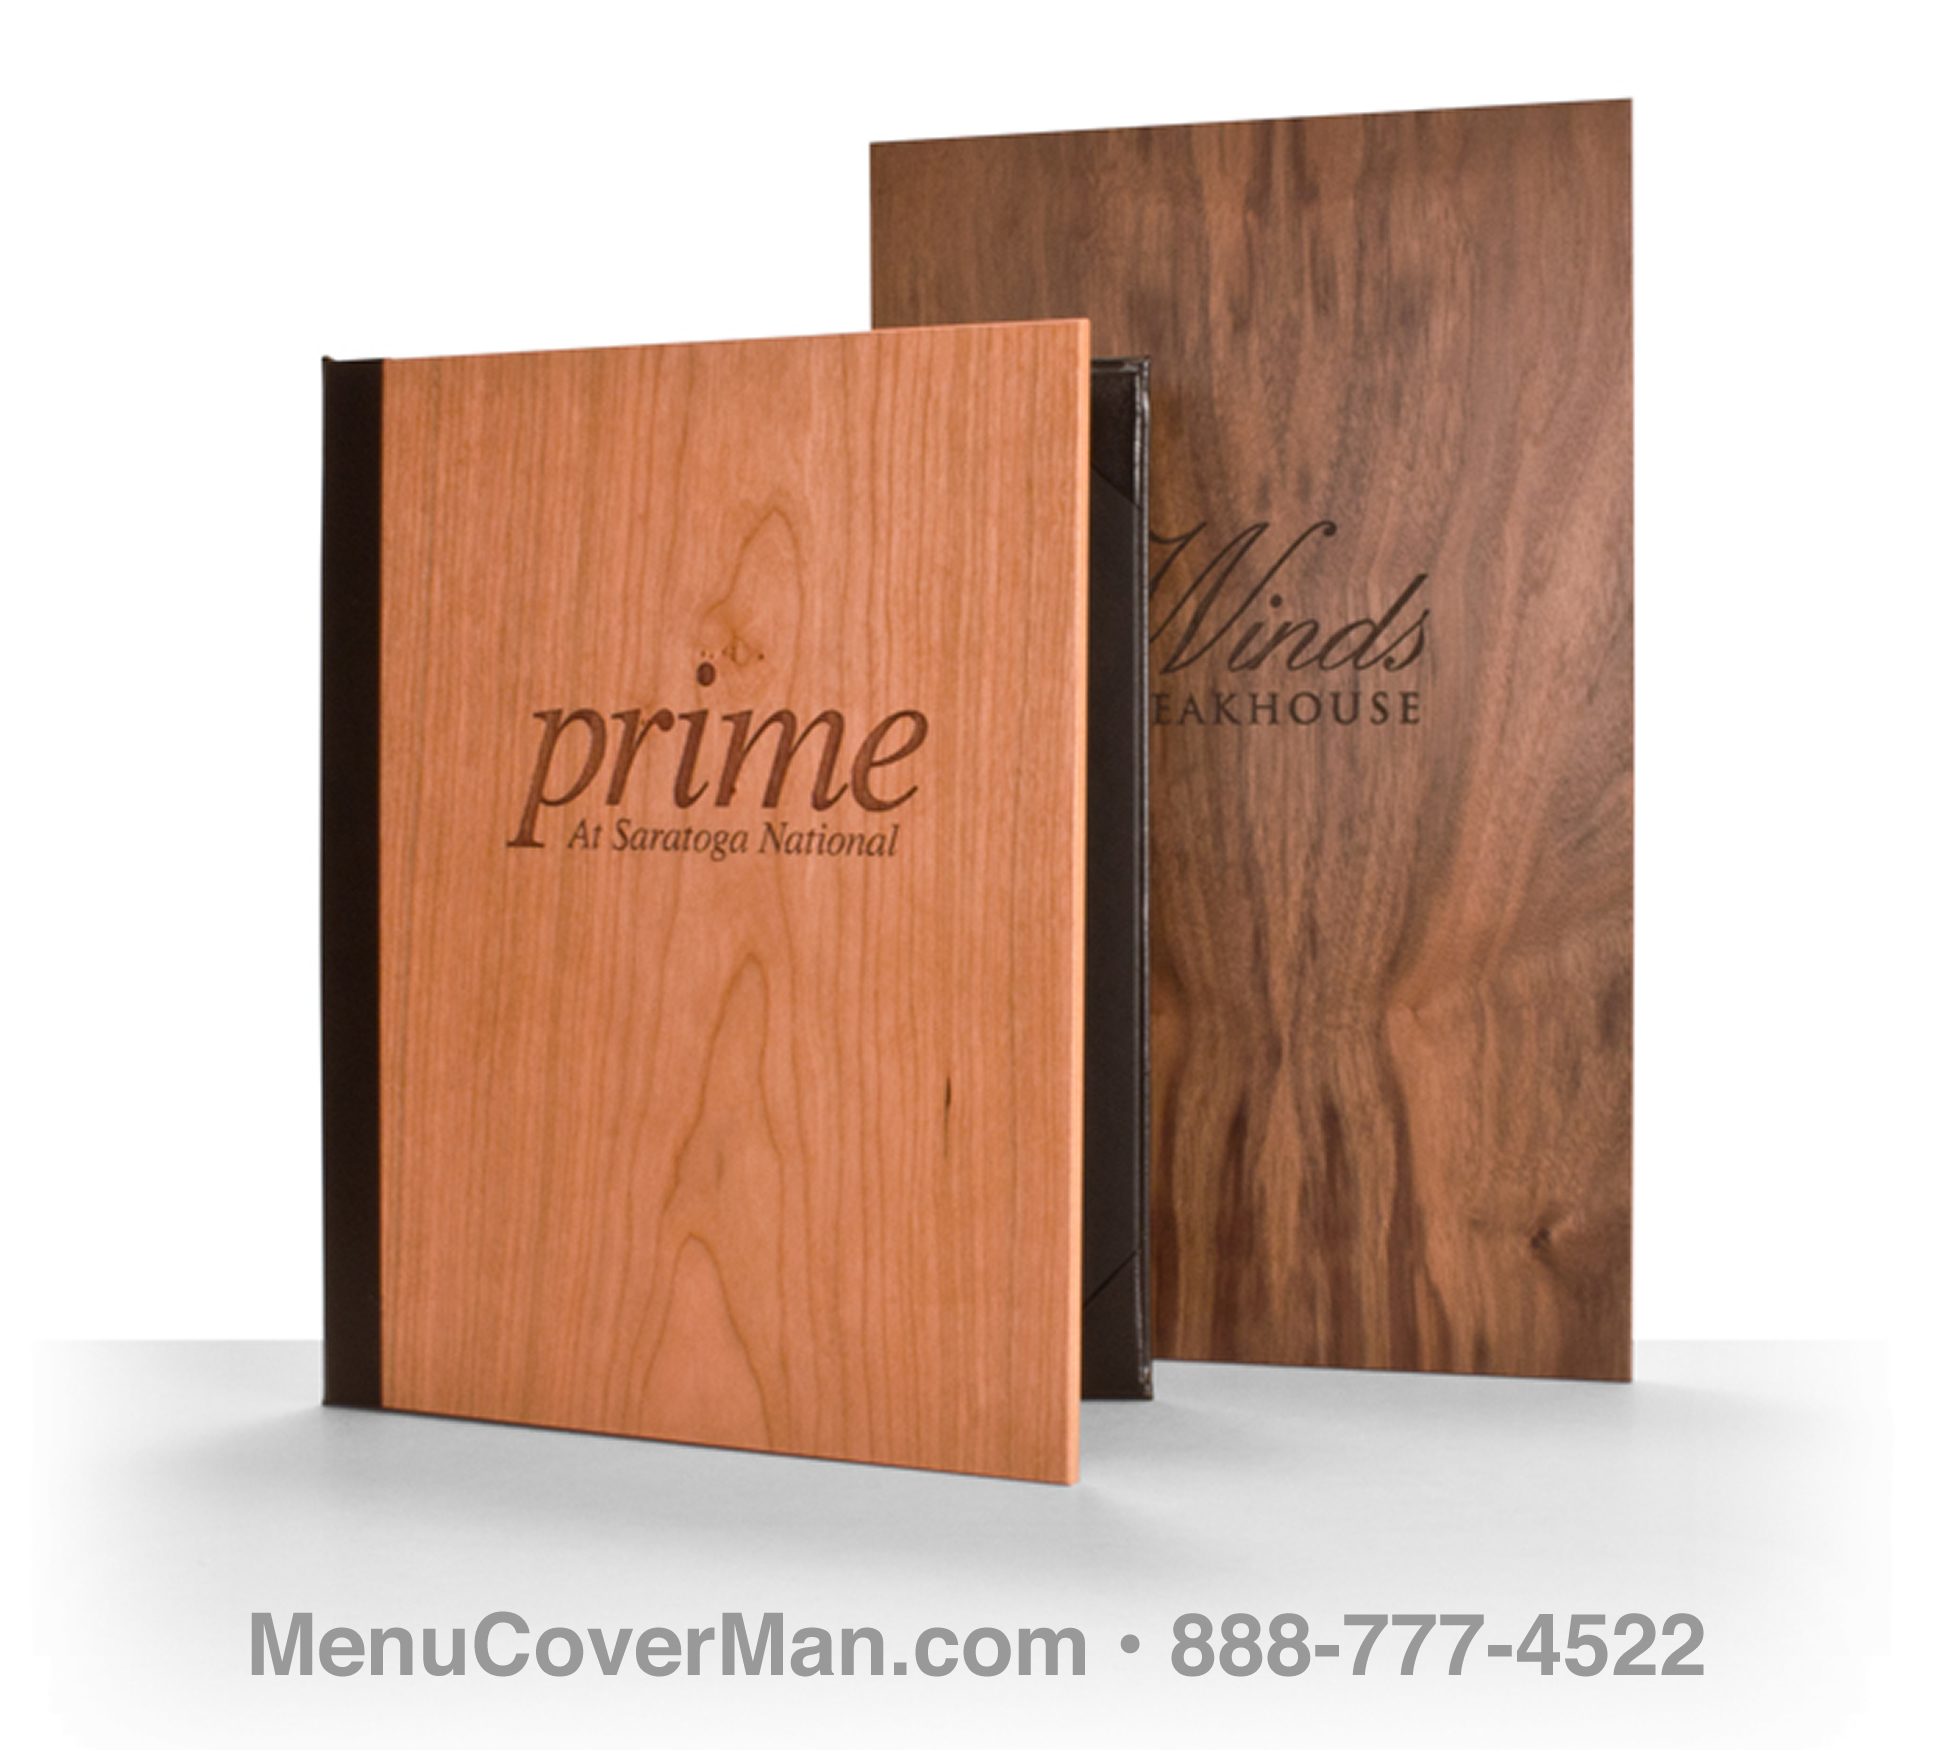 Authentic Wood Menu Covers • Real Wood Menu Covers • Menucoverman ...: menucoverman.com/authentic-wood-menu-covers.html